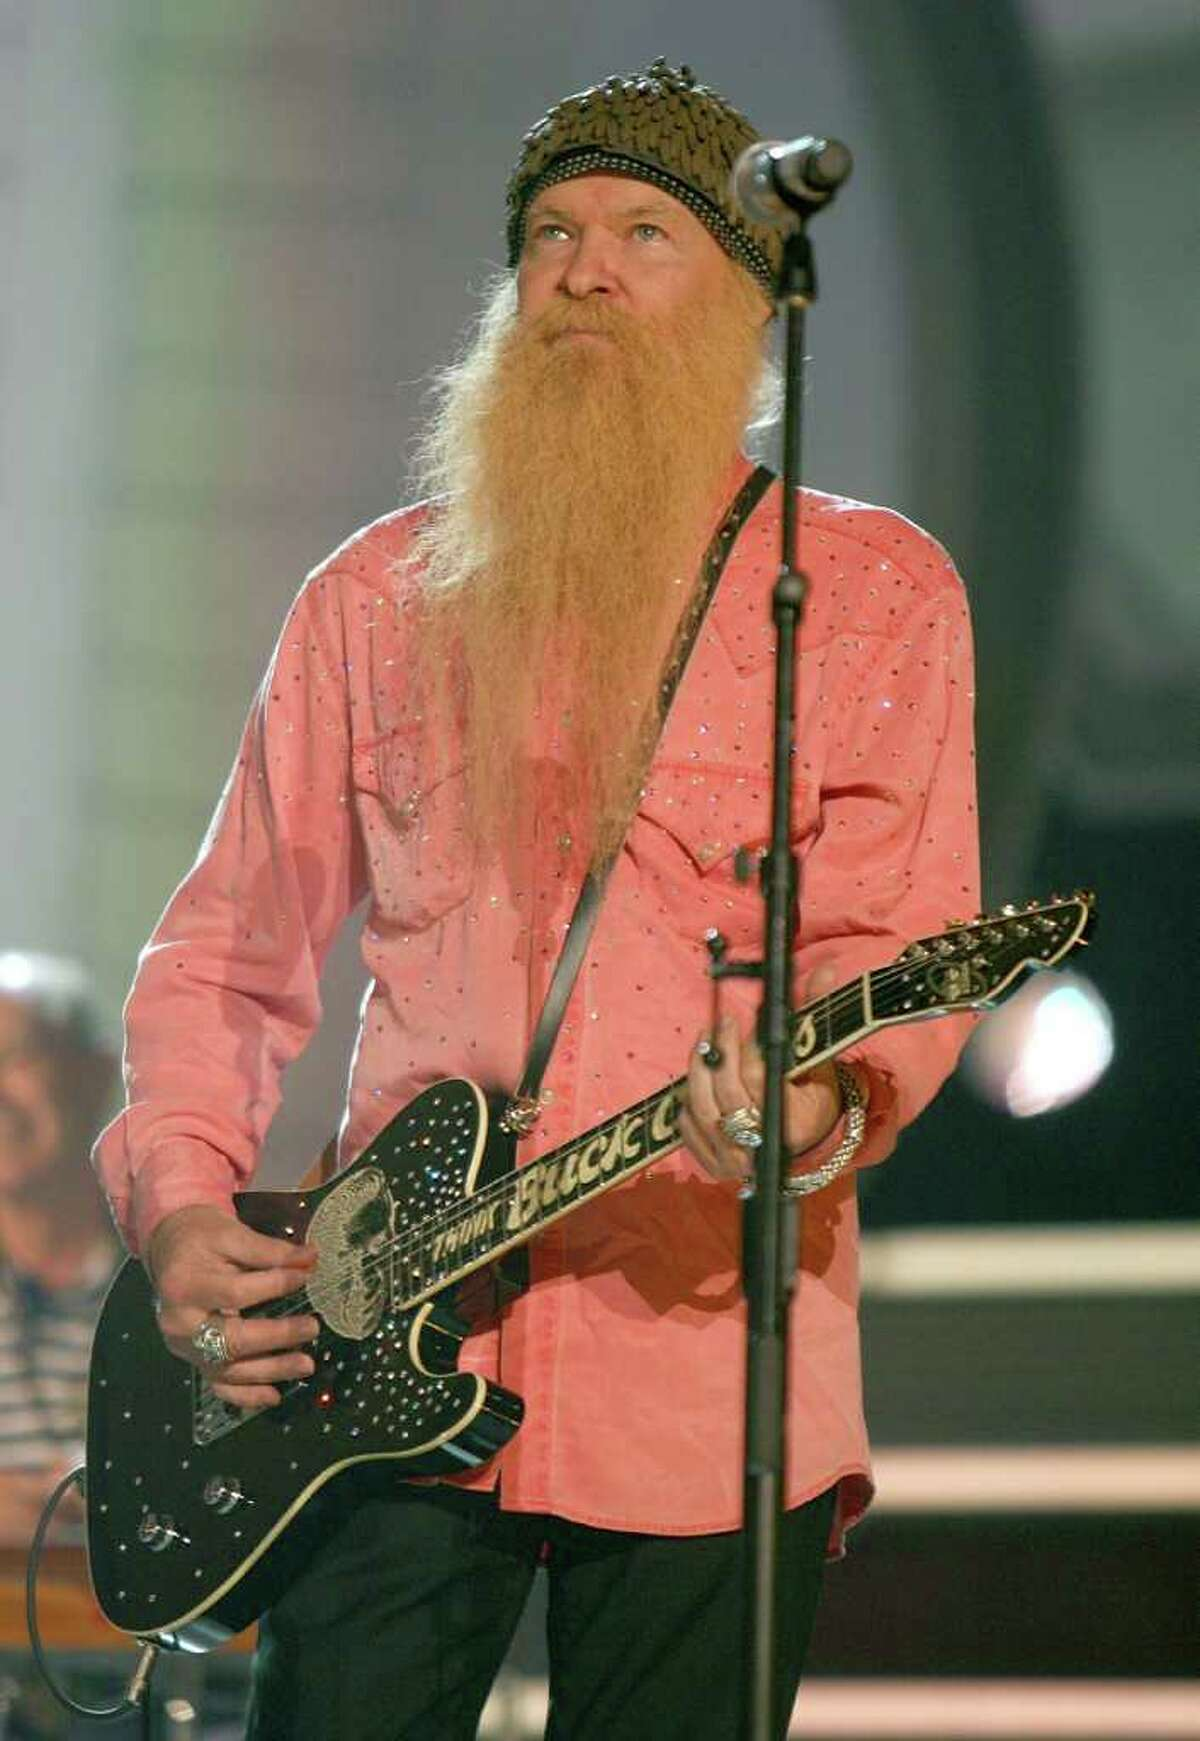 LAS VEGAS - MAY 22: Musician Billy Gibbons of ZZ Top onstage during the rehearsals for the Buck Owens tribute at the Academy of Country Music Awards held at the MGM Grand Garden Arena on May 22, 2006 in Las Vegas, Nevada. (Photo by Kevin Winter/Getty Images)